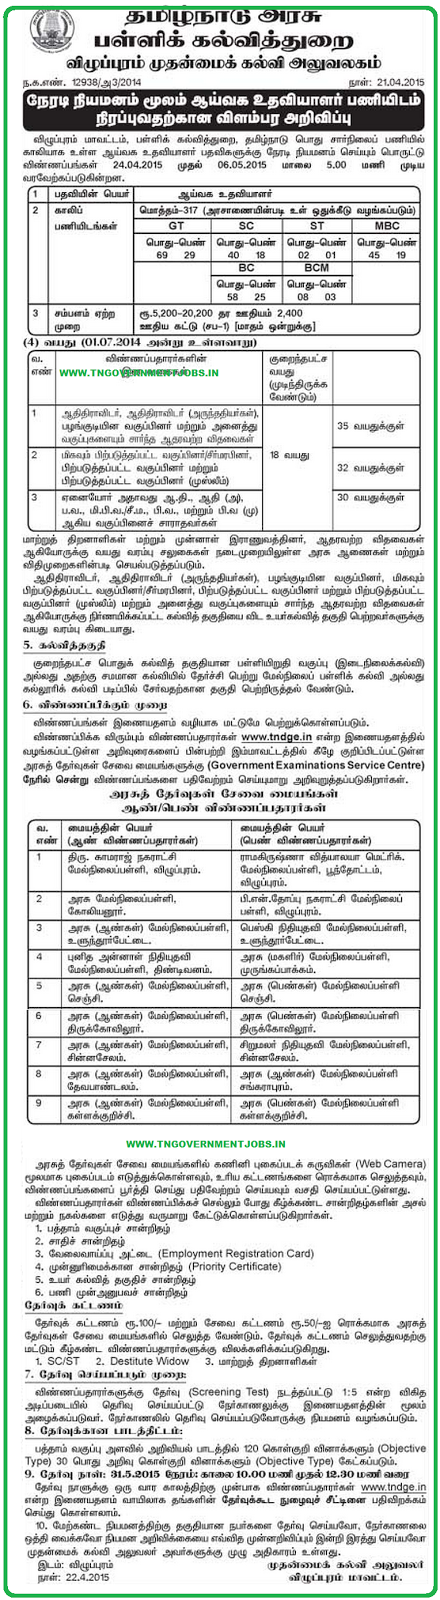 Villupuram CEO Lab Asst Recruitments 2015 (www.tngovernmentjobs.in)